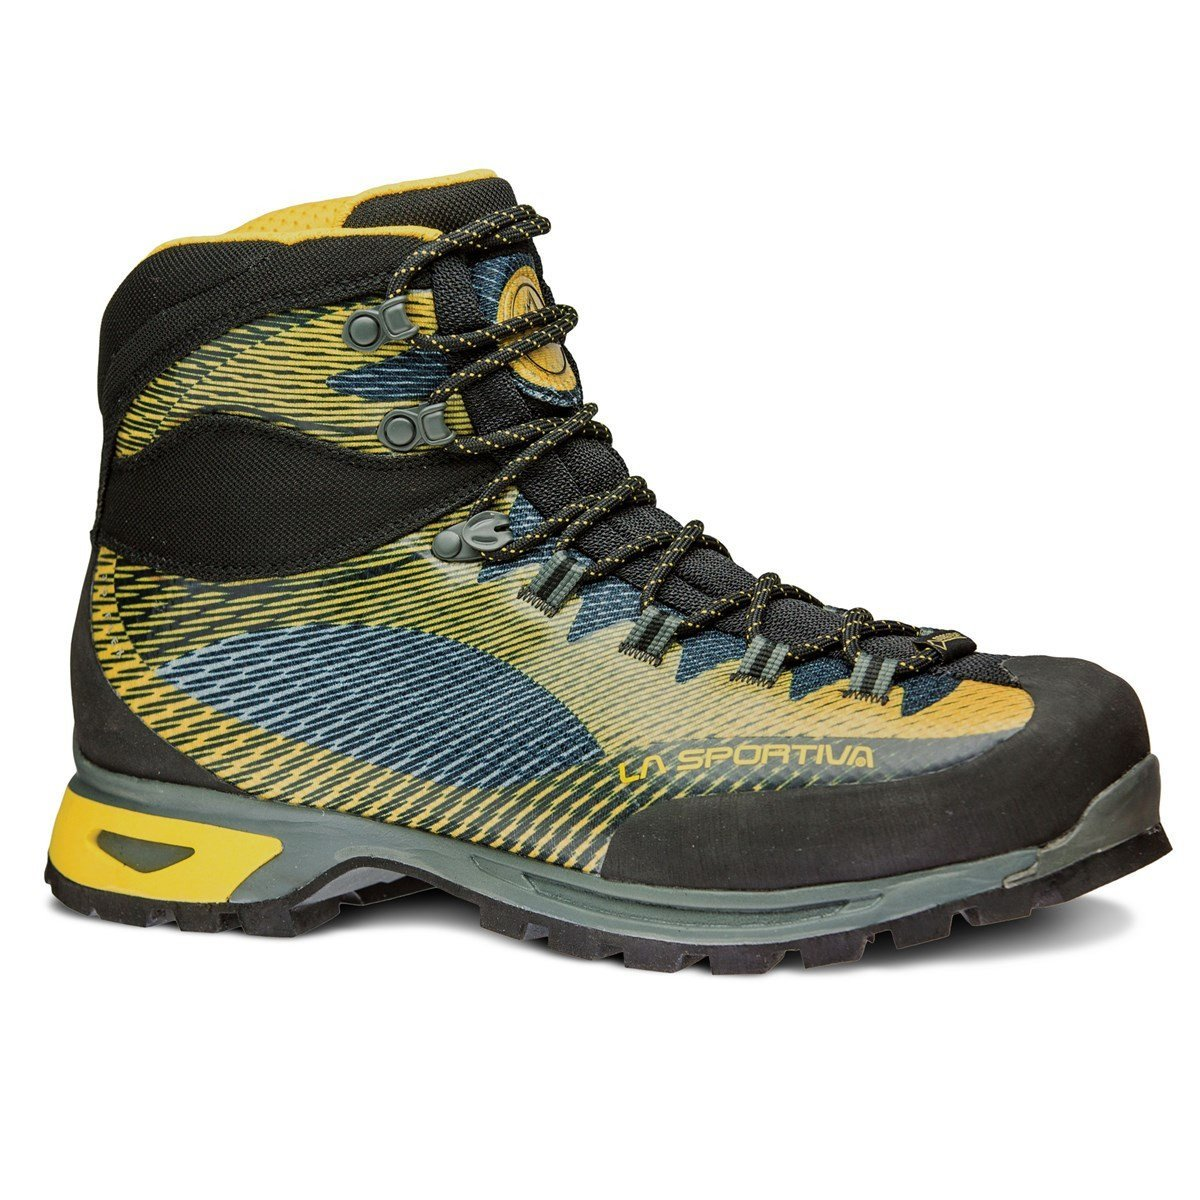 La Sportiva Trango TRK GTX Mountaineering Boot, in black, green and blue colours